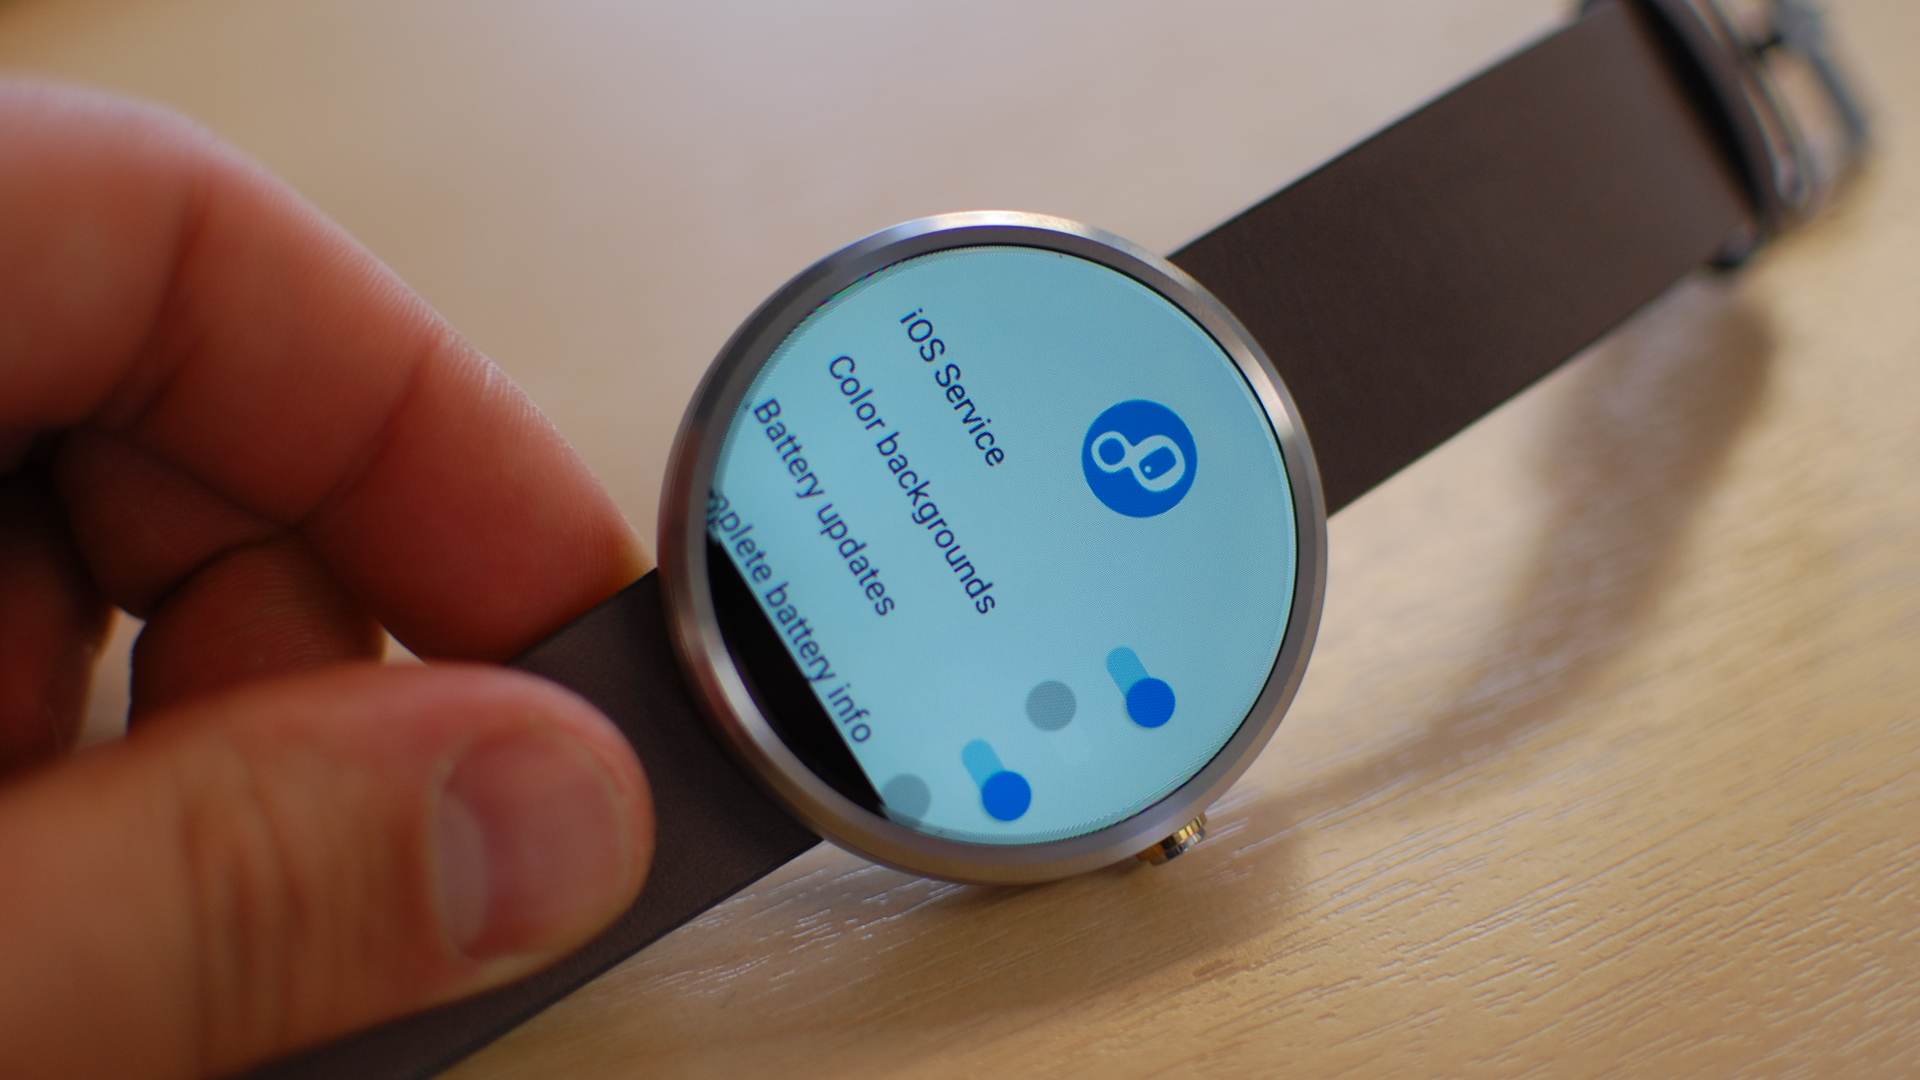 How to use an Android Wear smartwatch with your iPhone